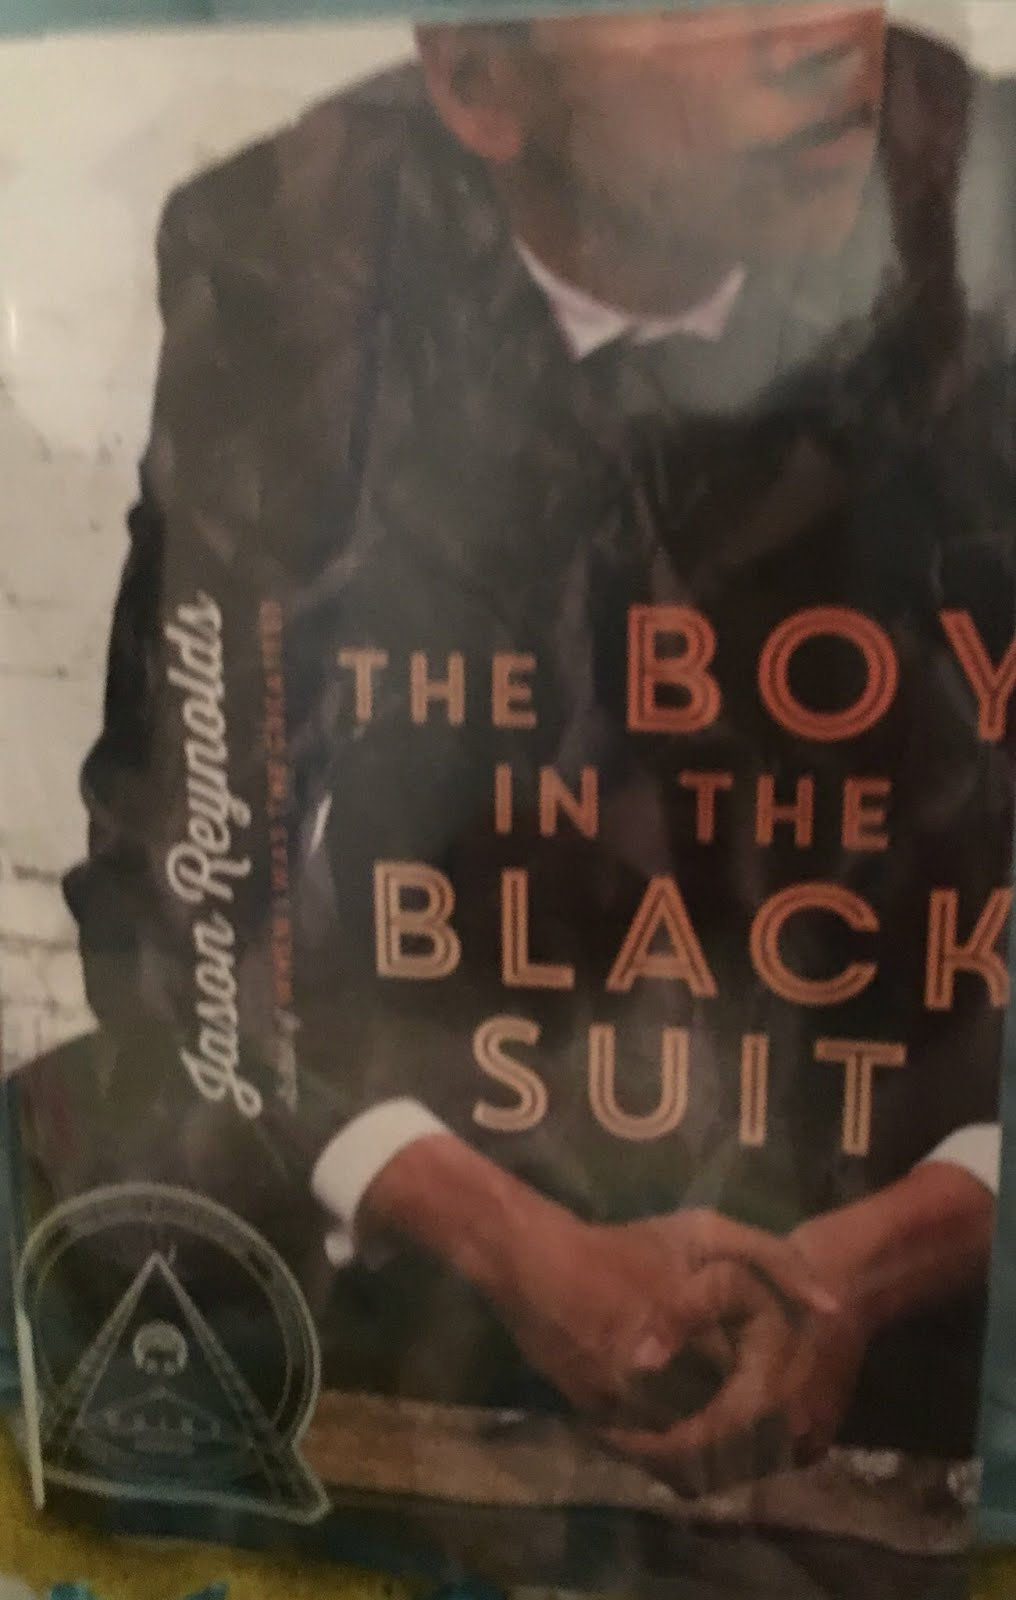 Librarian Leaps: The Boy in the Black Suit